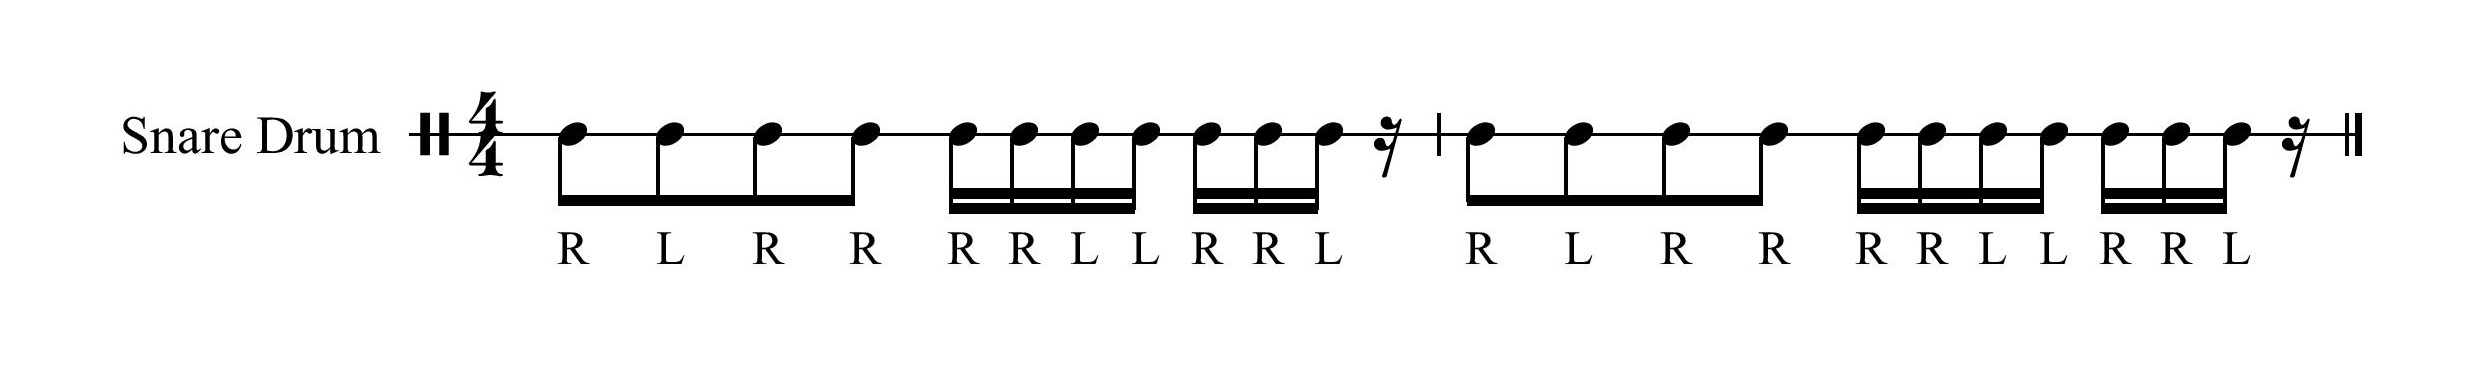 7 Stroke Drum Roll with Intro Paradiddle